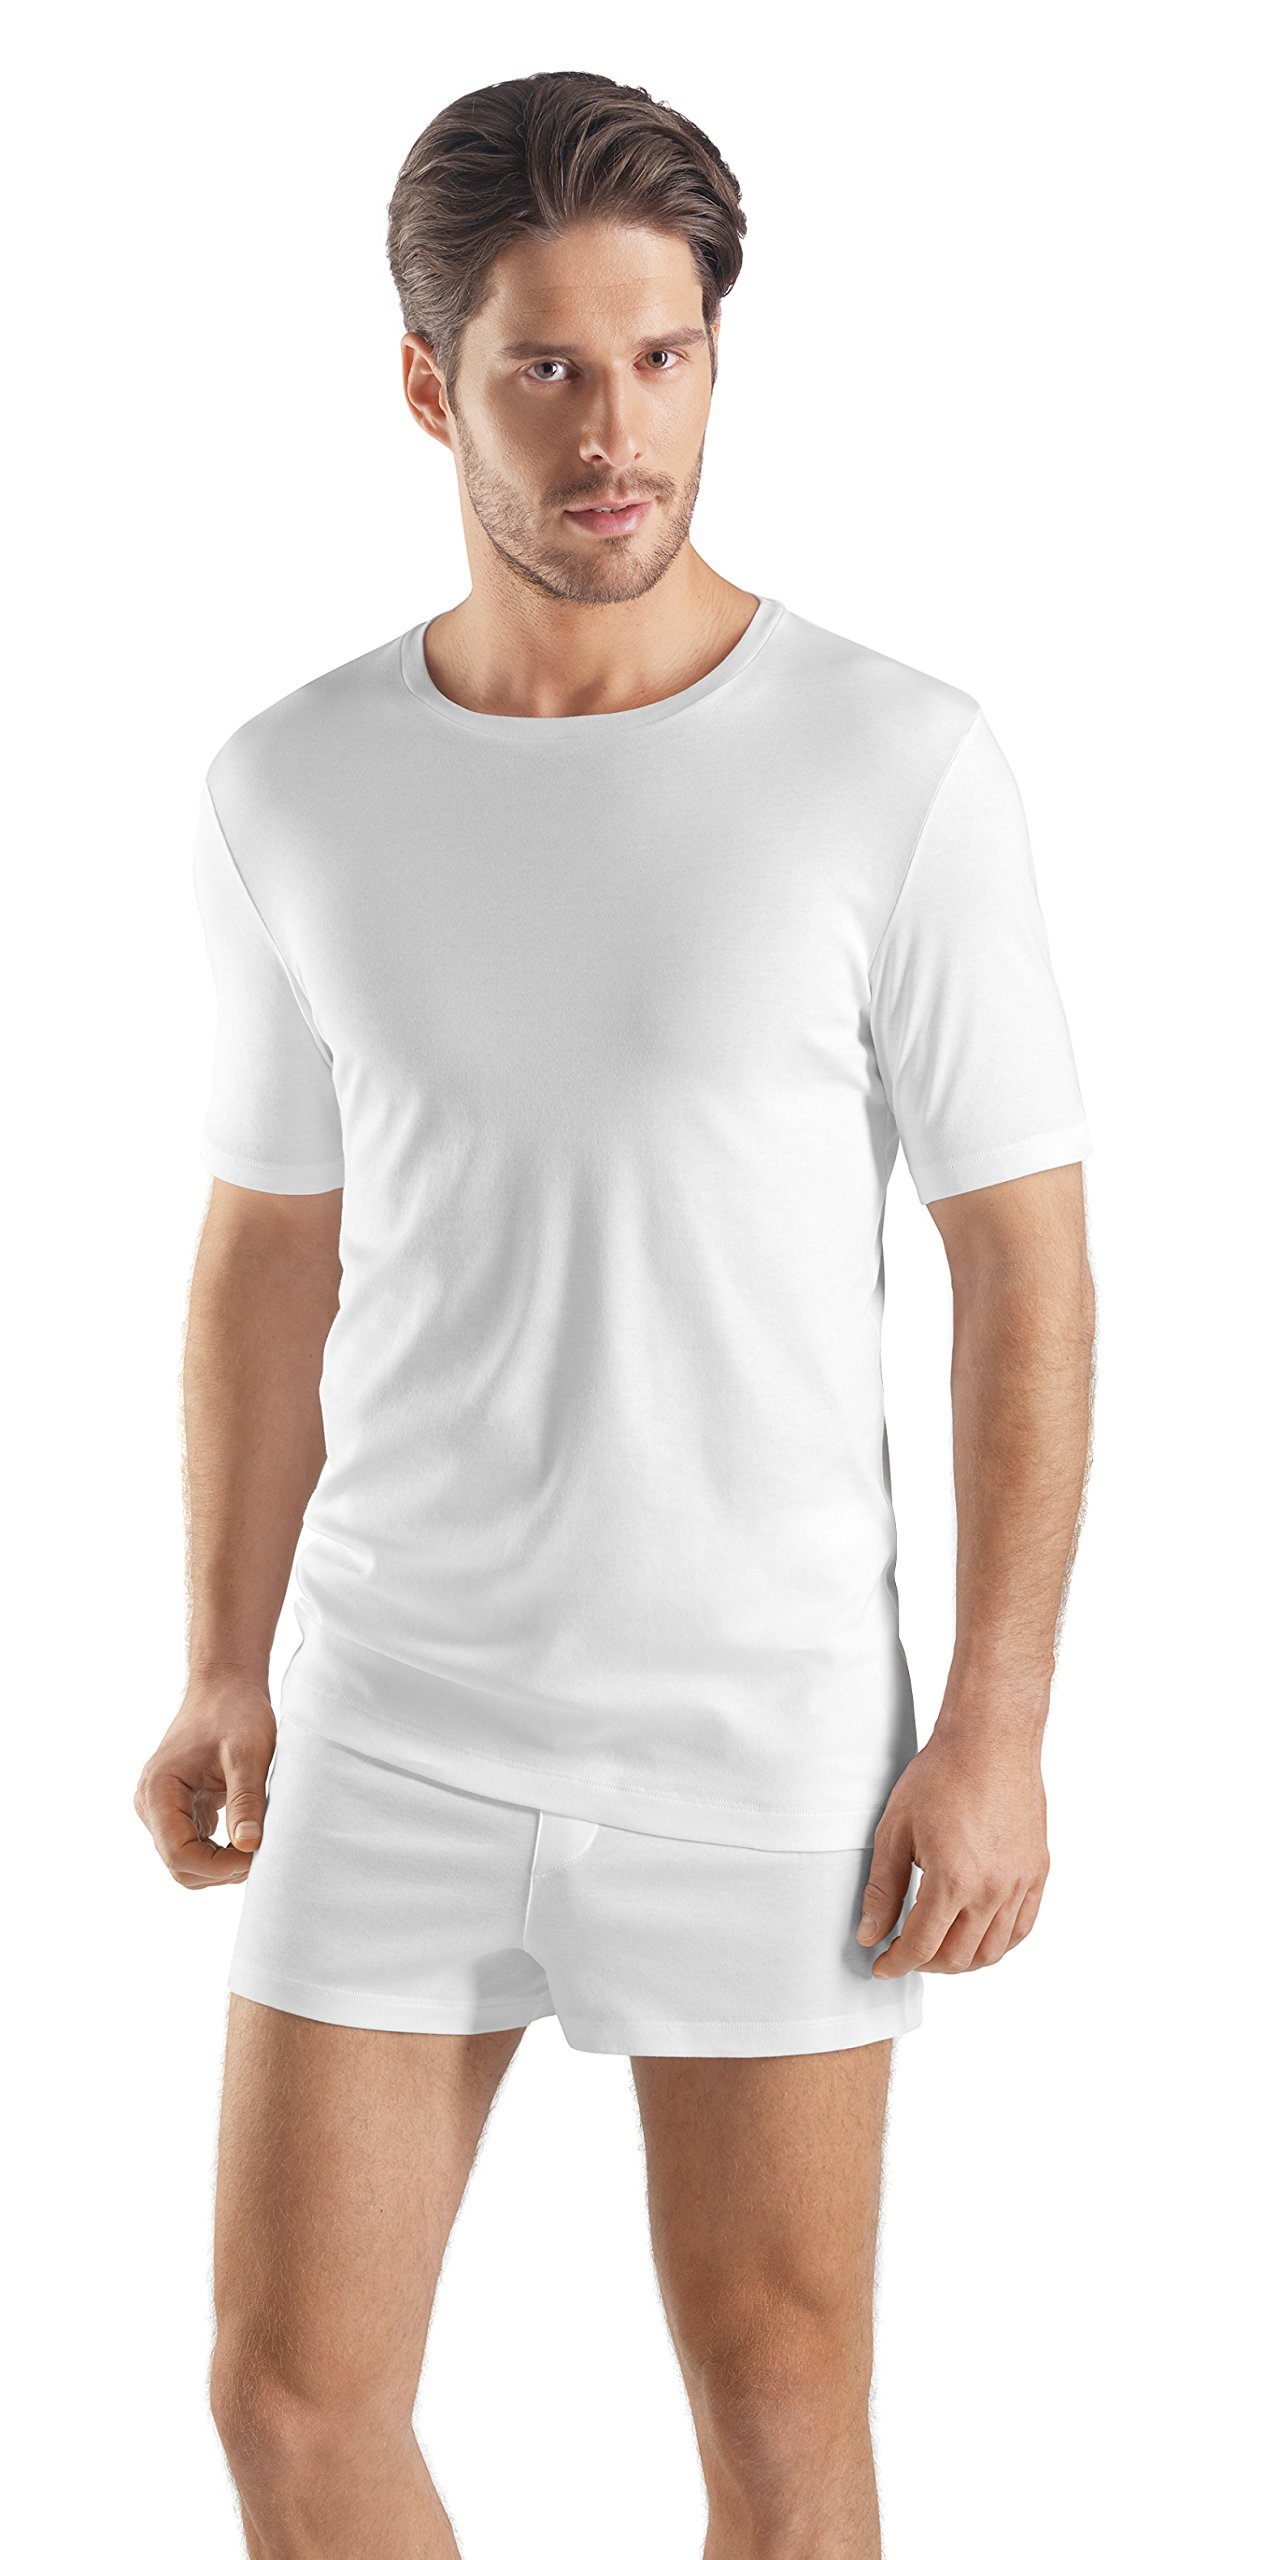 Hanro Men's Sea Island Cotton Short Sleeve Crew Neck 73174, White, Large